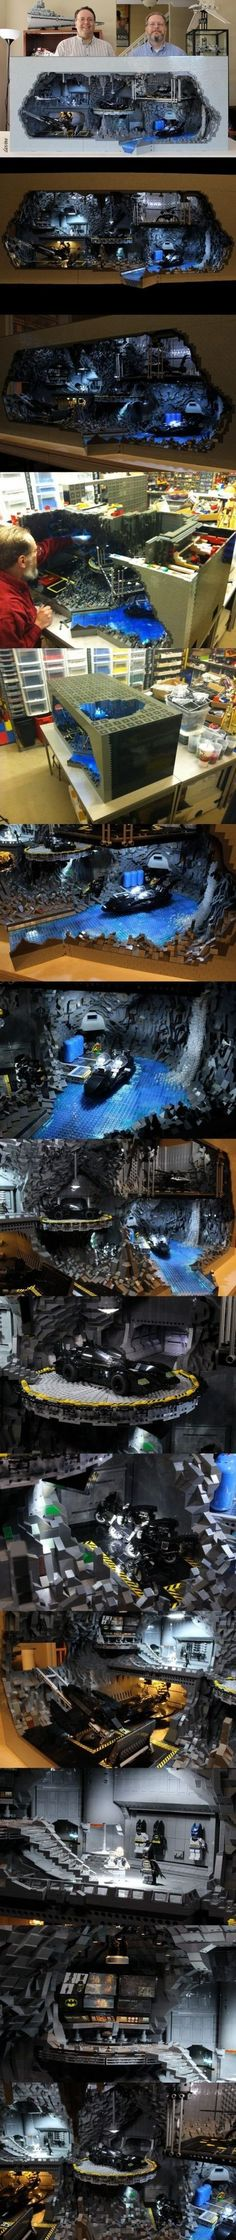 I just died this is so amazing. Lego Batcave